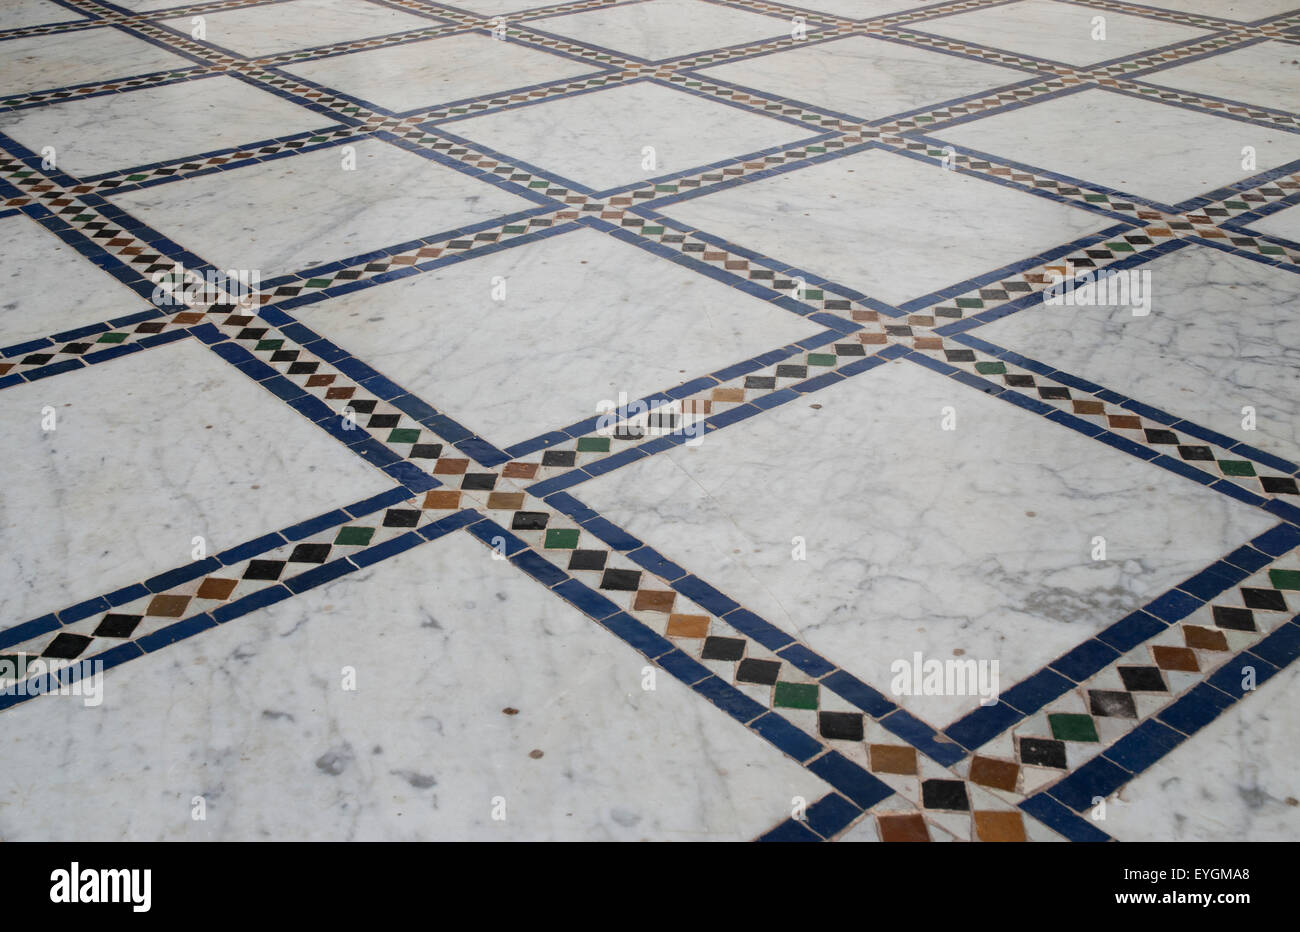 morocco bahia palace marrakech mosaic tile floor detail. Black Bedroom Furniture Sets. Home Design Ideas